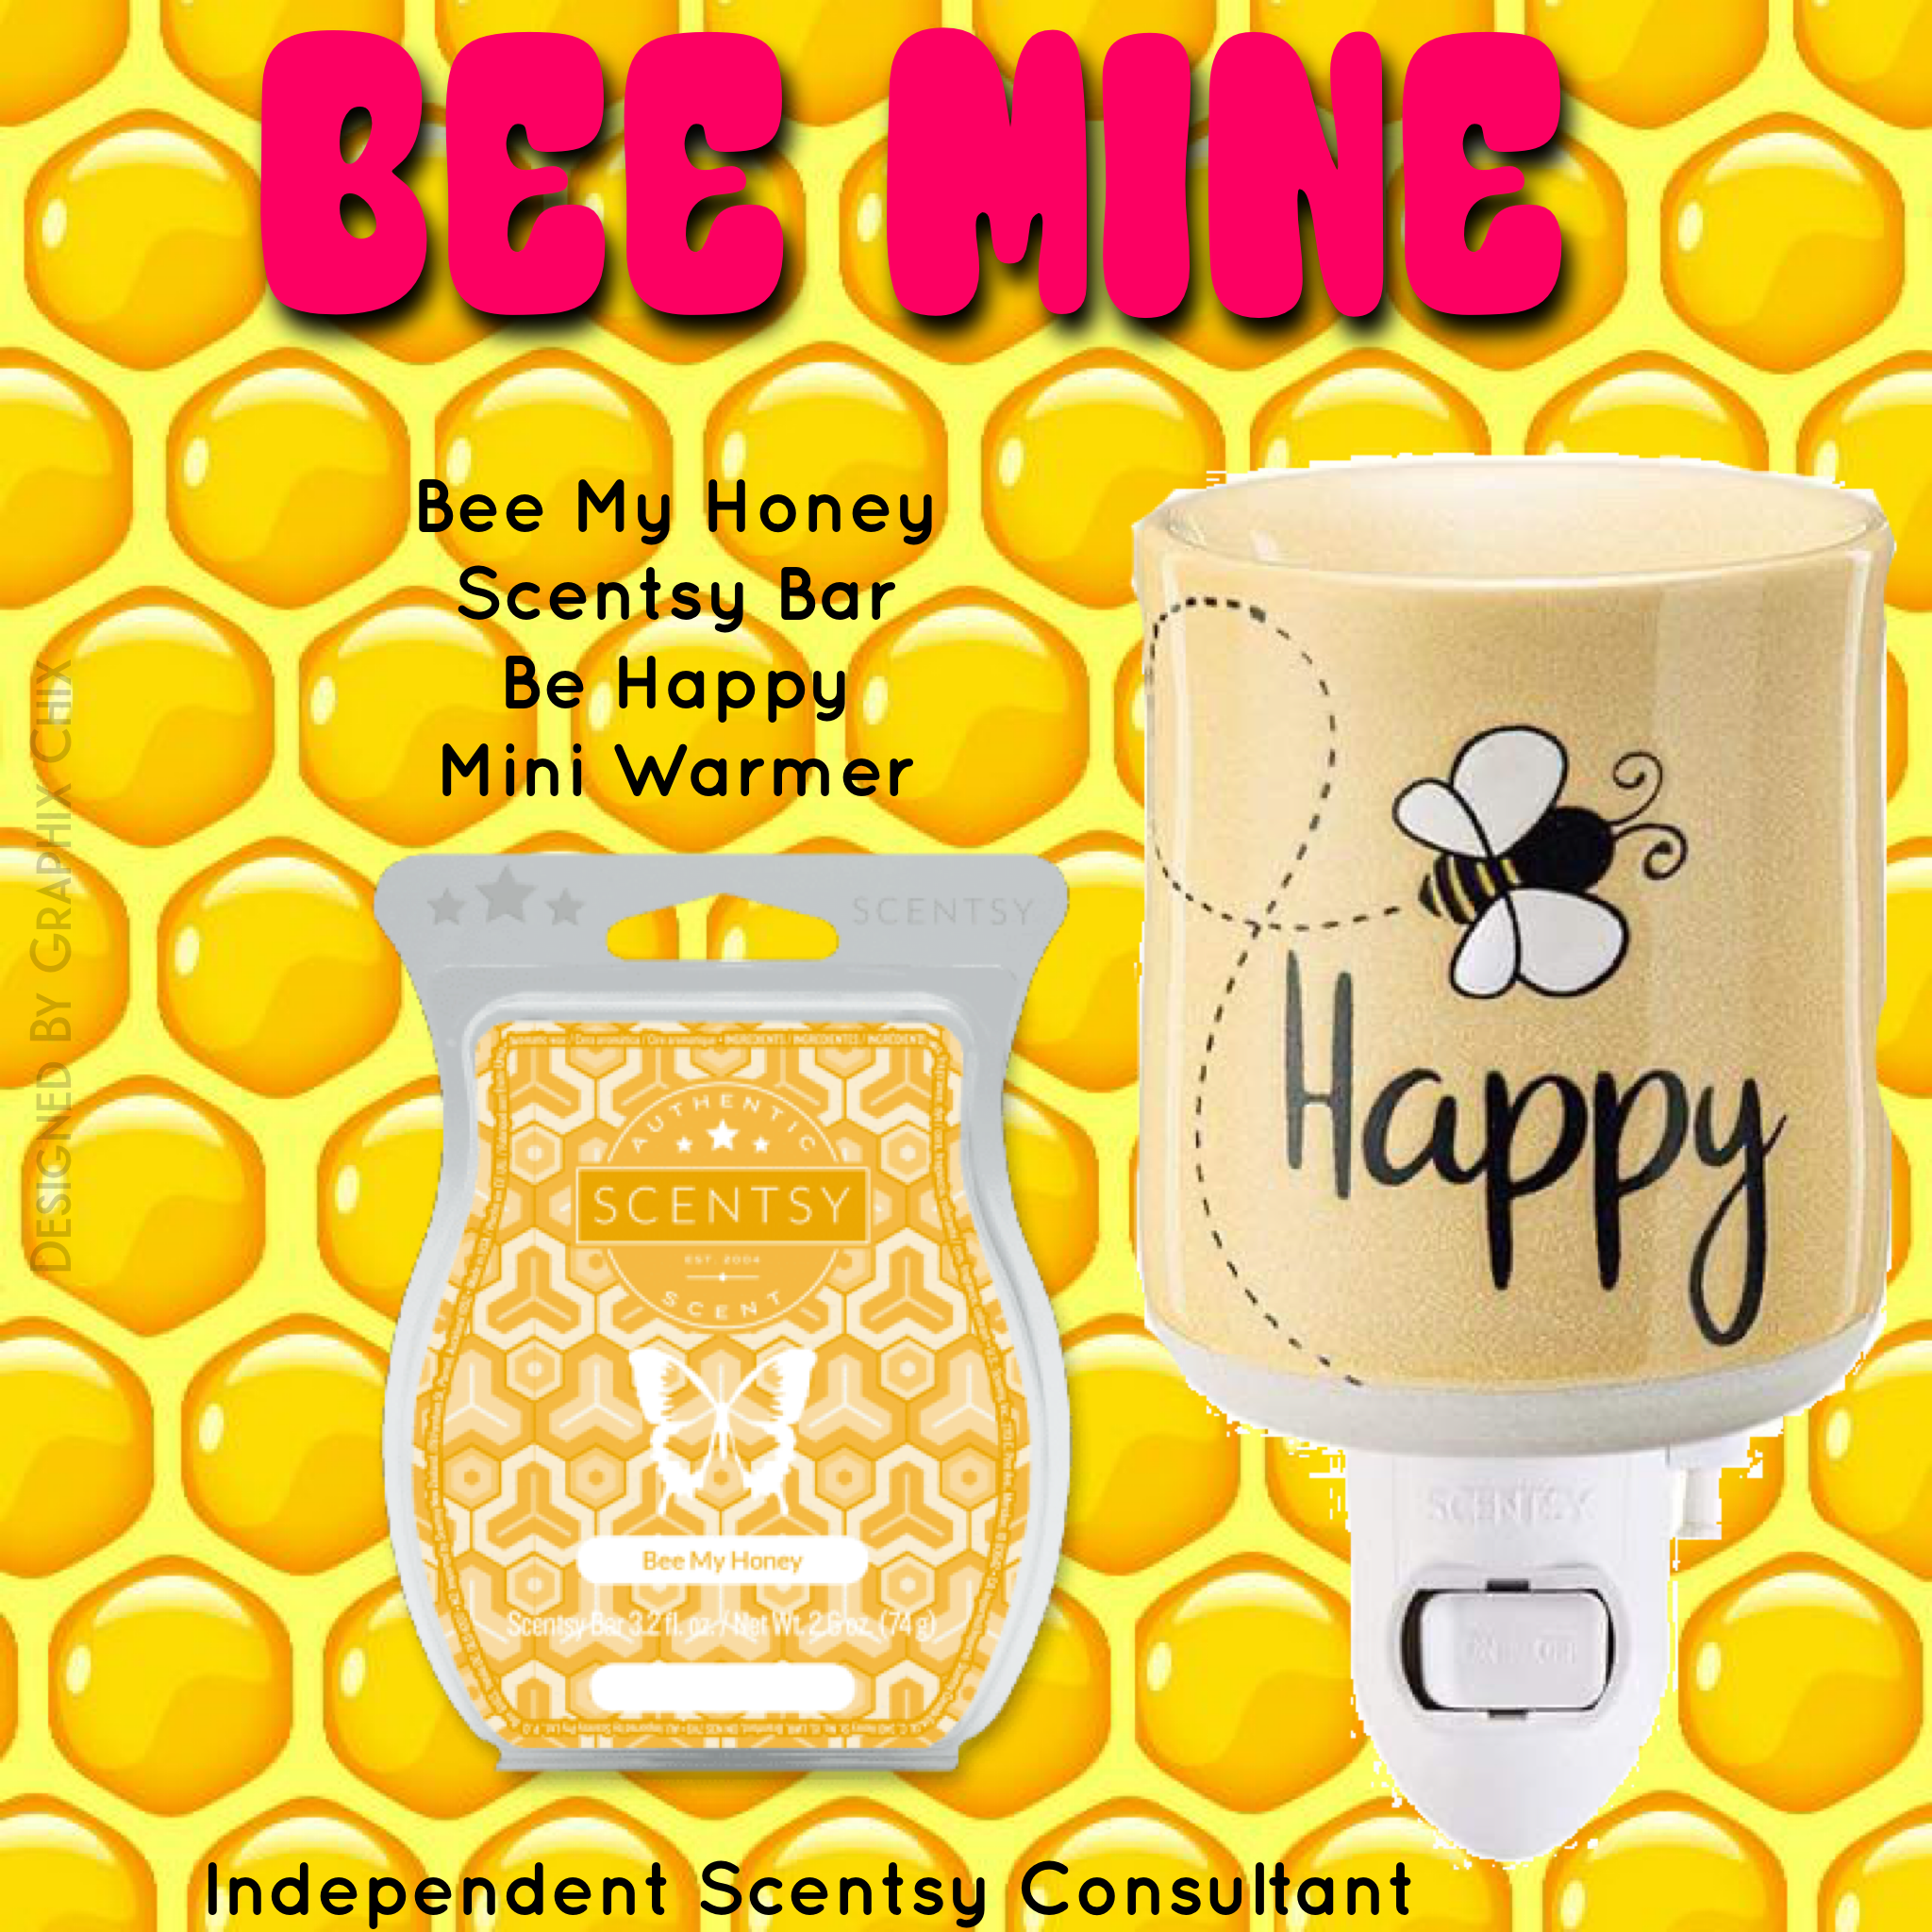 I just love this lil Bee plug in! I've got mine in the